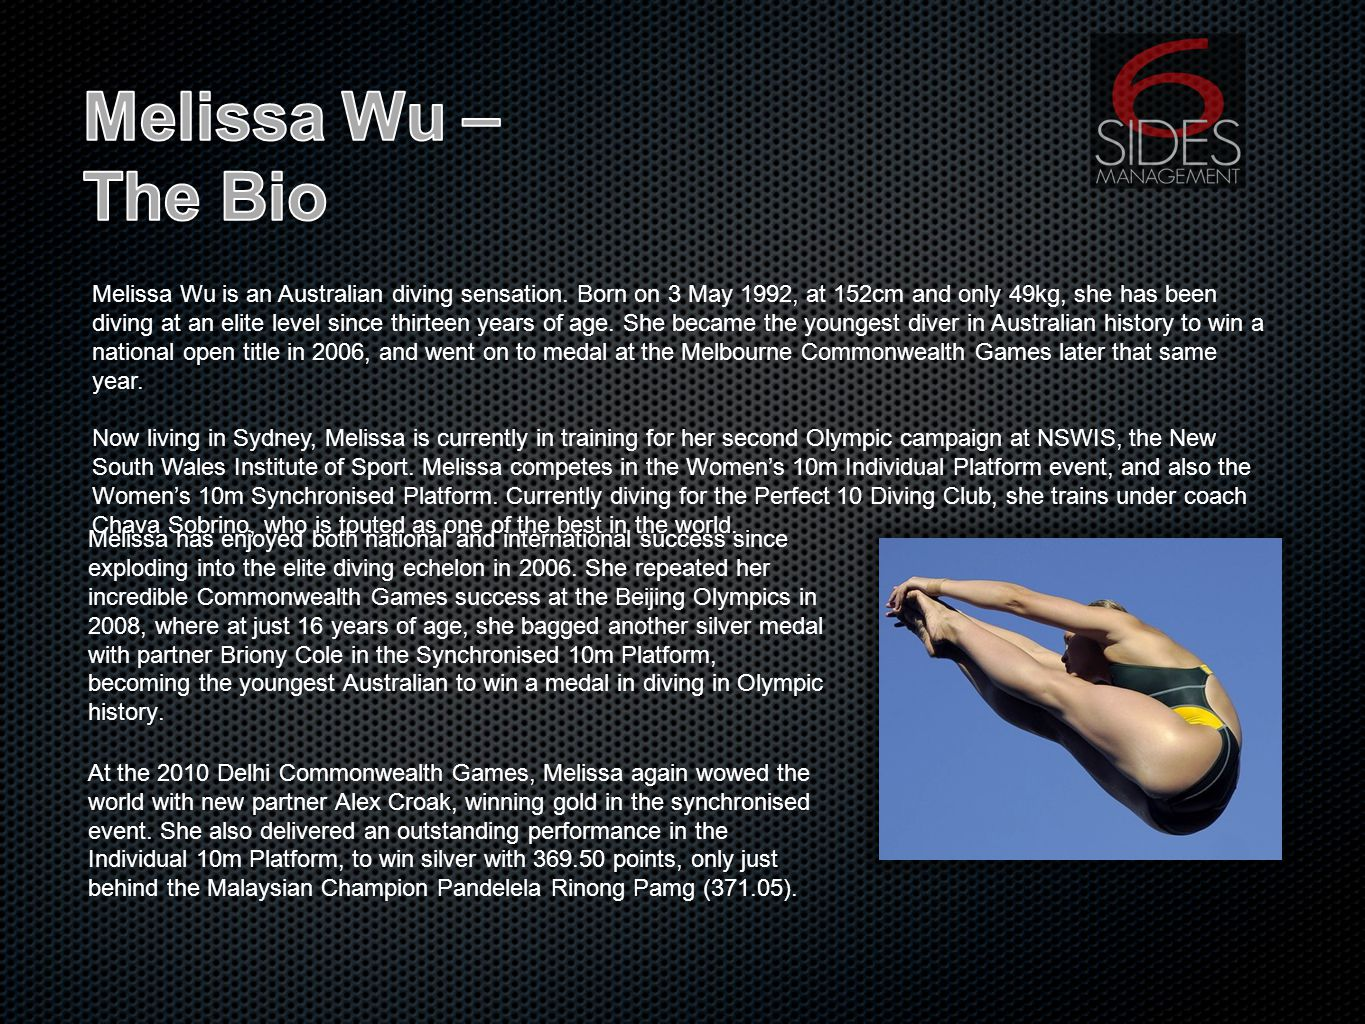 Melissa has enjoyed both national and international success since exploding into the elite diving echelon in 2006.